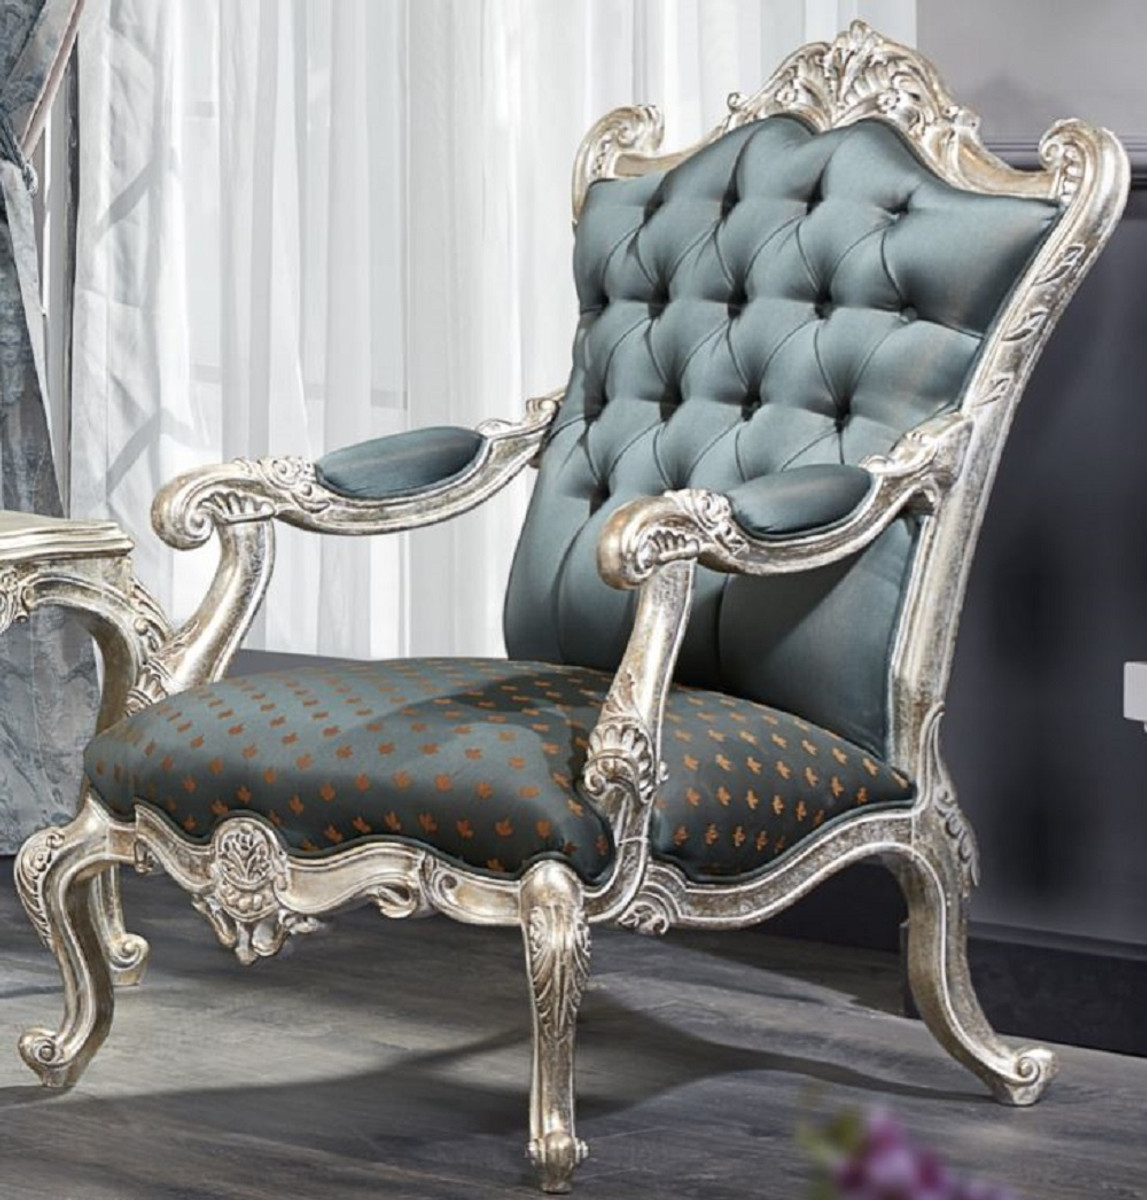 Casa Padrino Luxury Baroque Chesterfield Throne Armchair Turquoise Dark Turquoise Gold Silver 87 X 83 X H 110 Cm Baroque Furniture - Casa Padrino Sessel